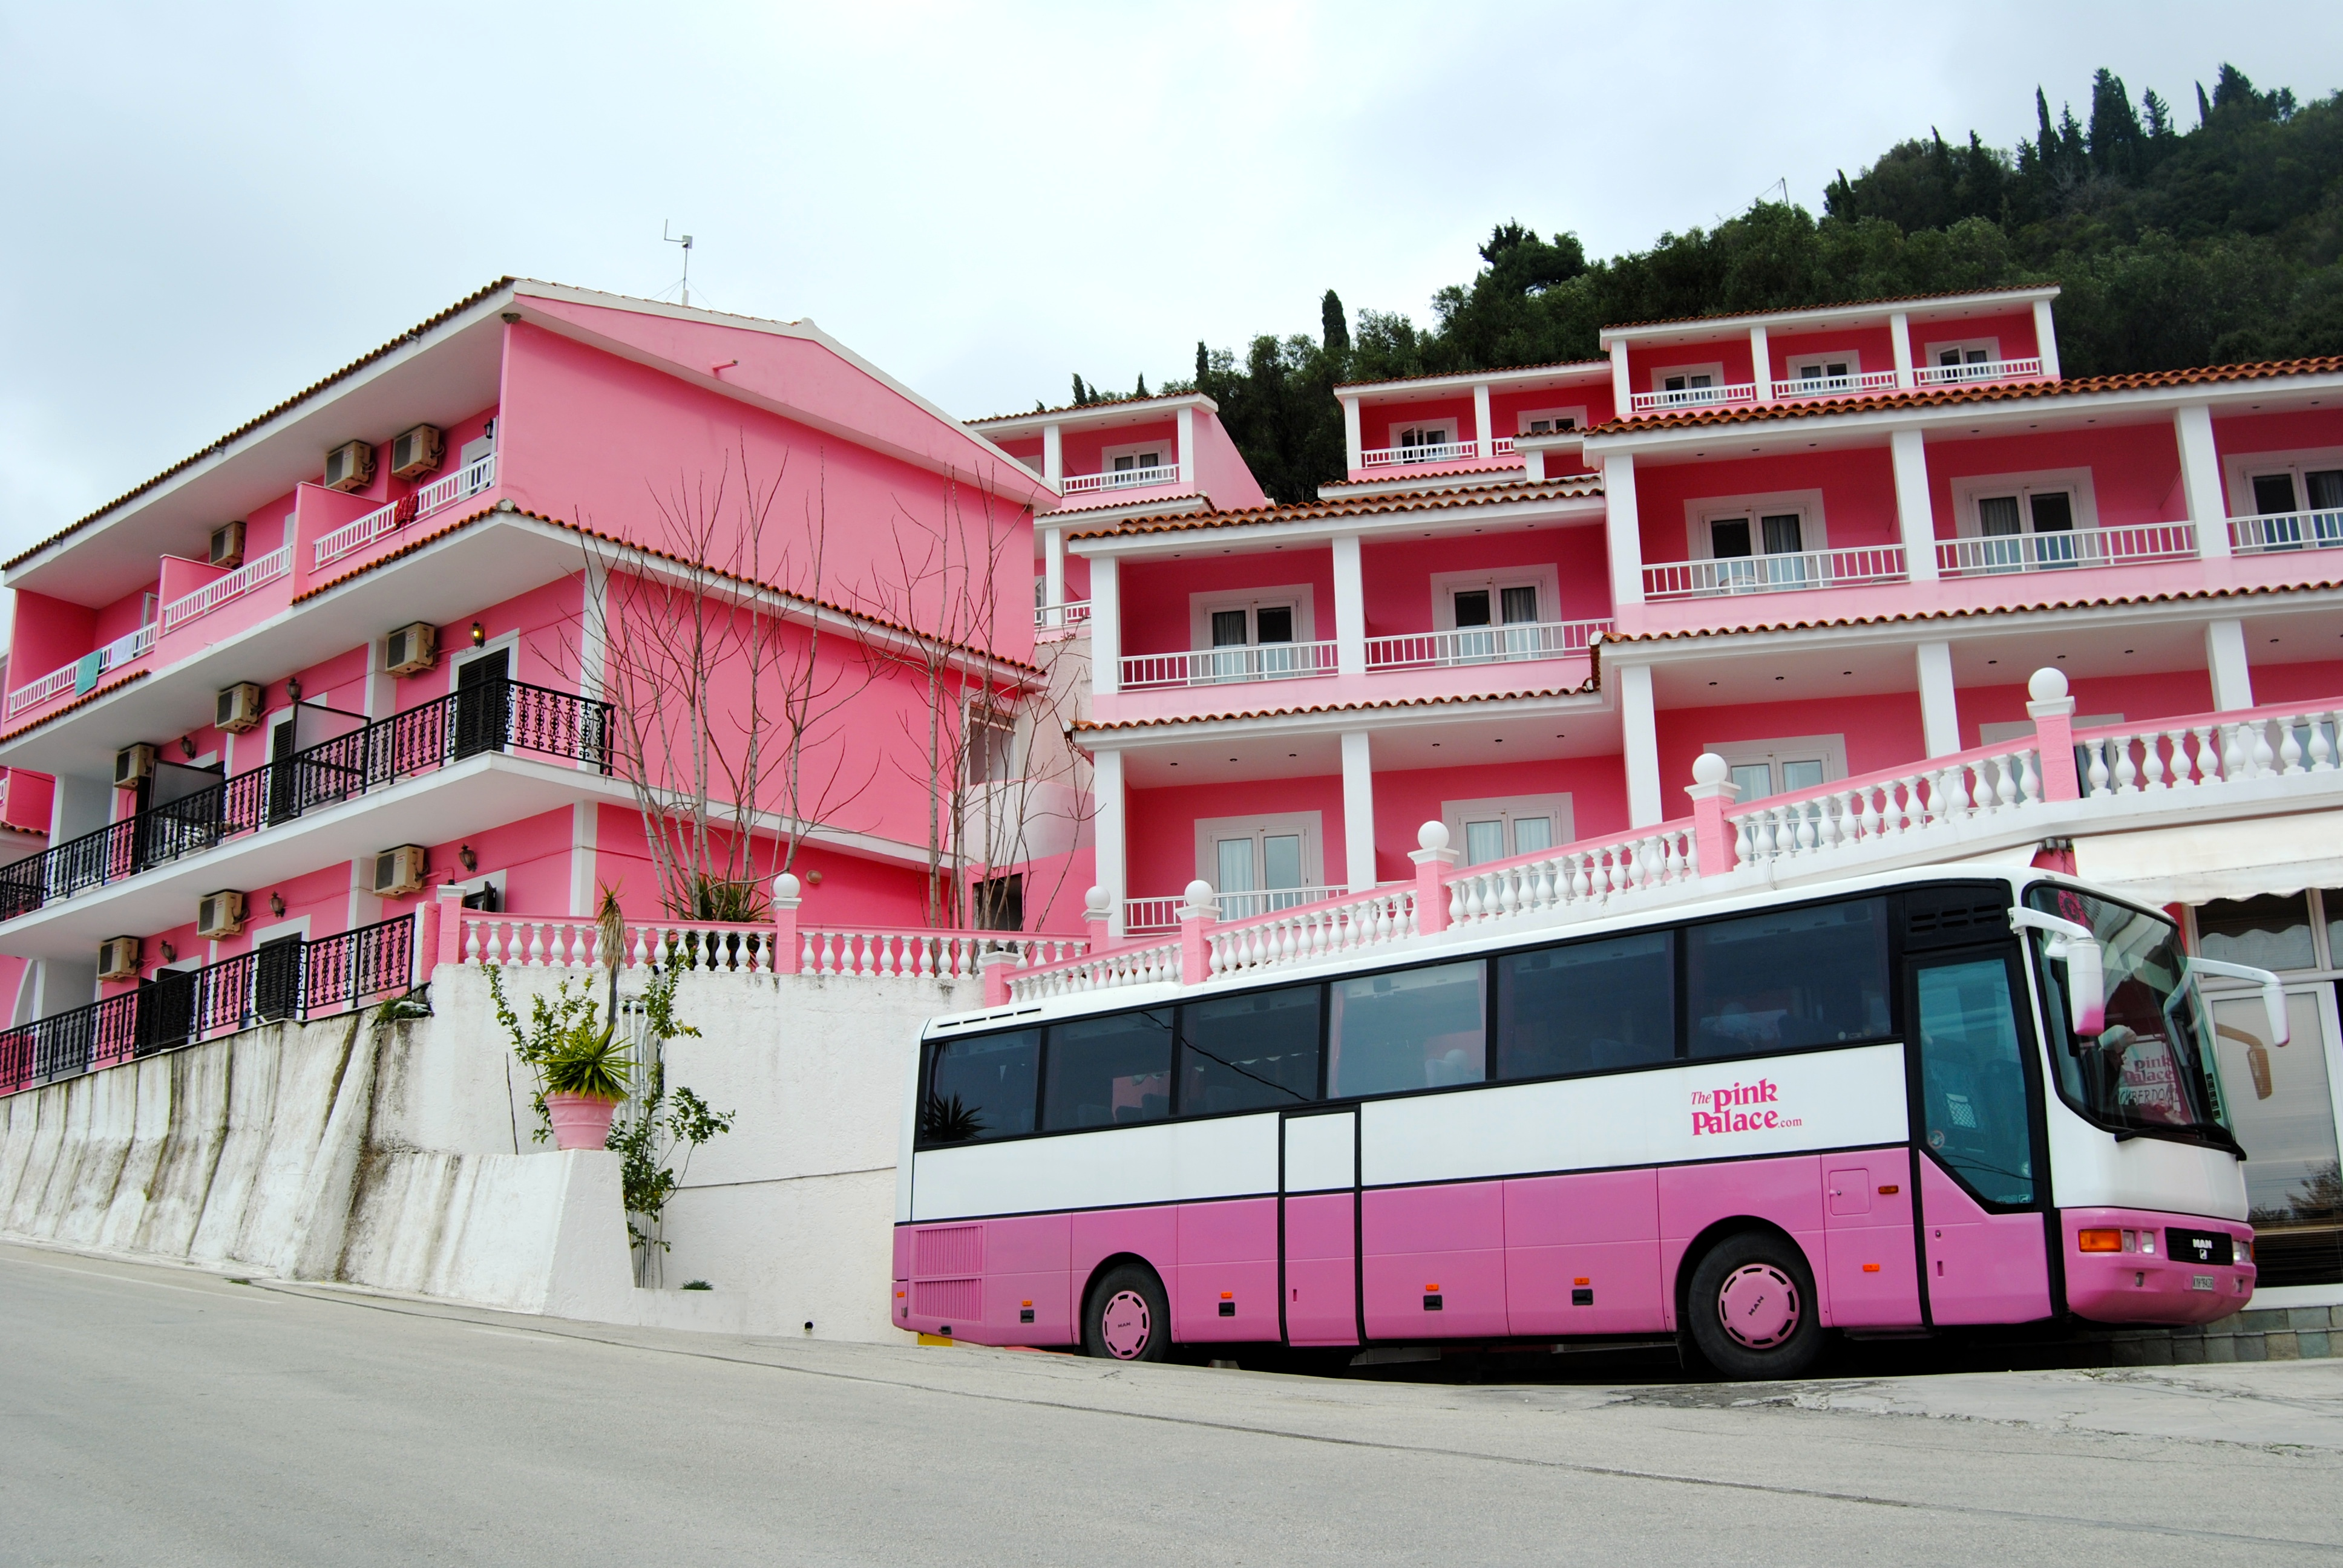 The Pink Palace.